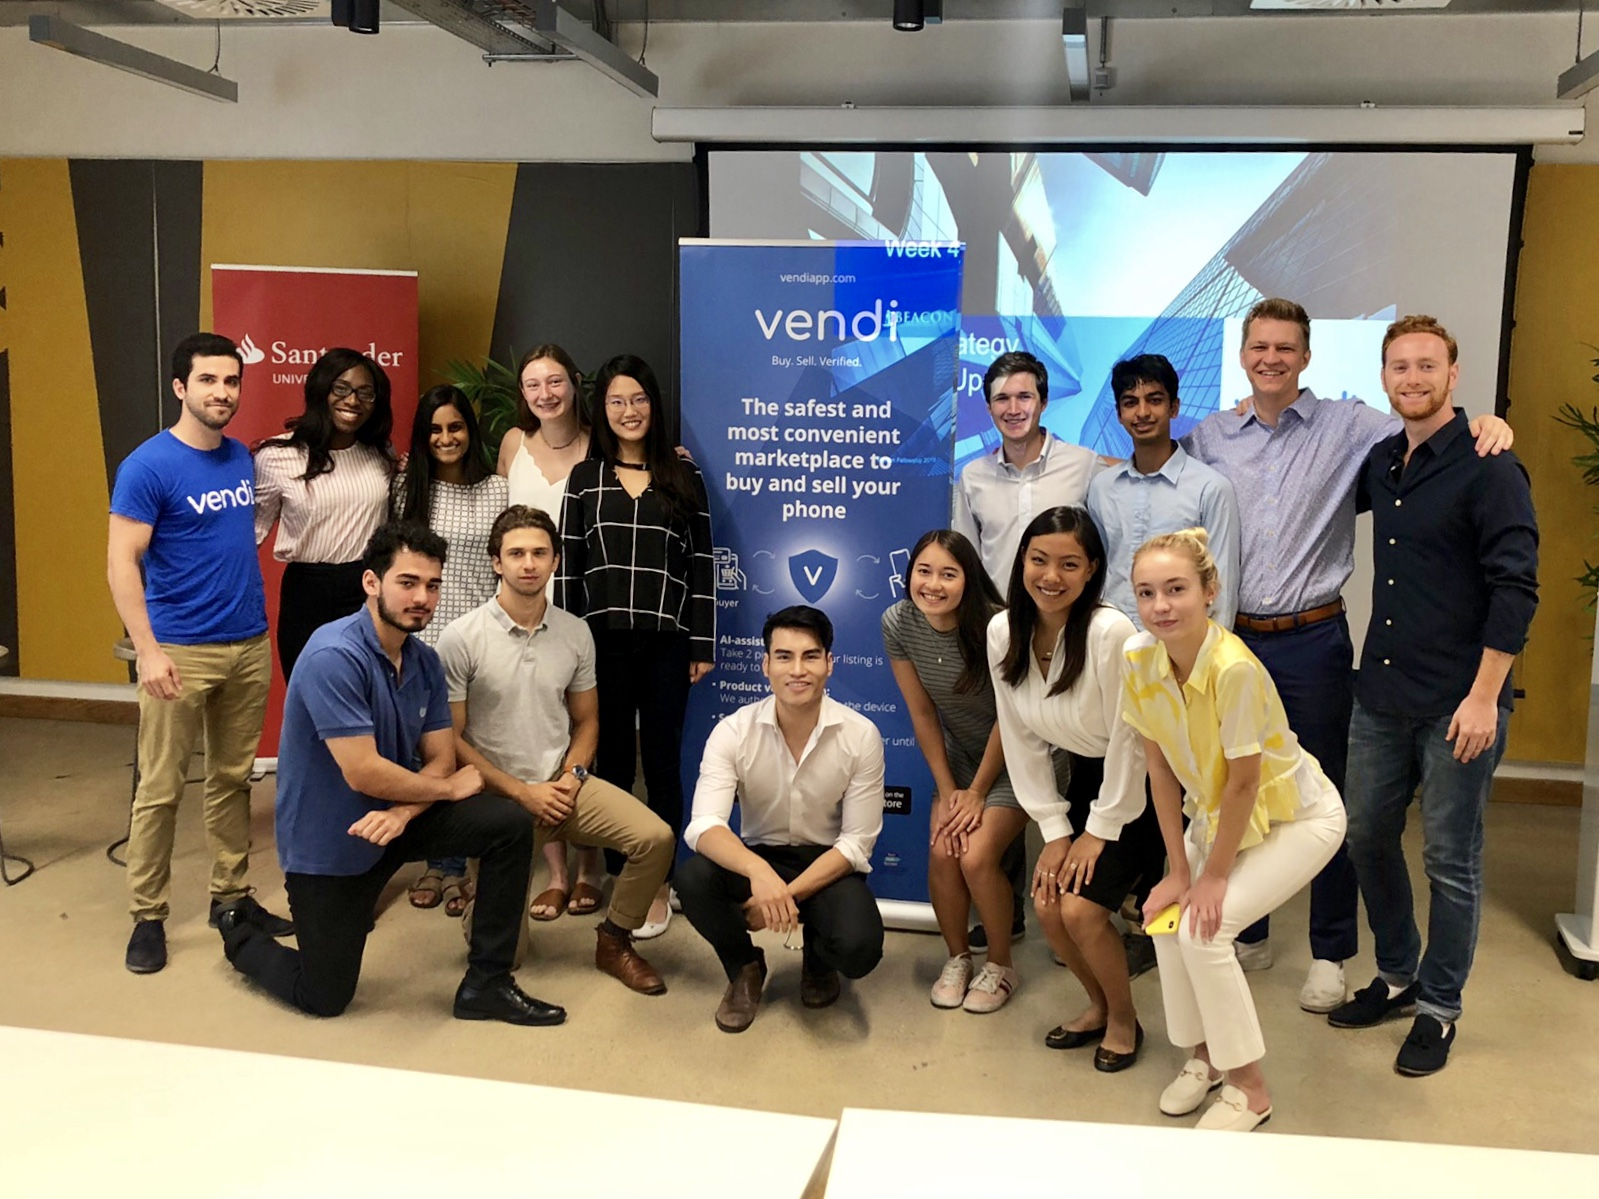 2019 Fellows at the Vendi Client Site in London.